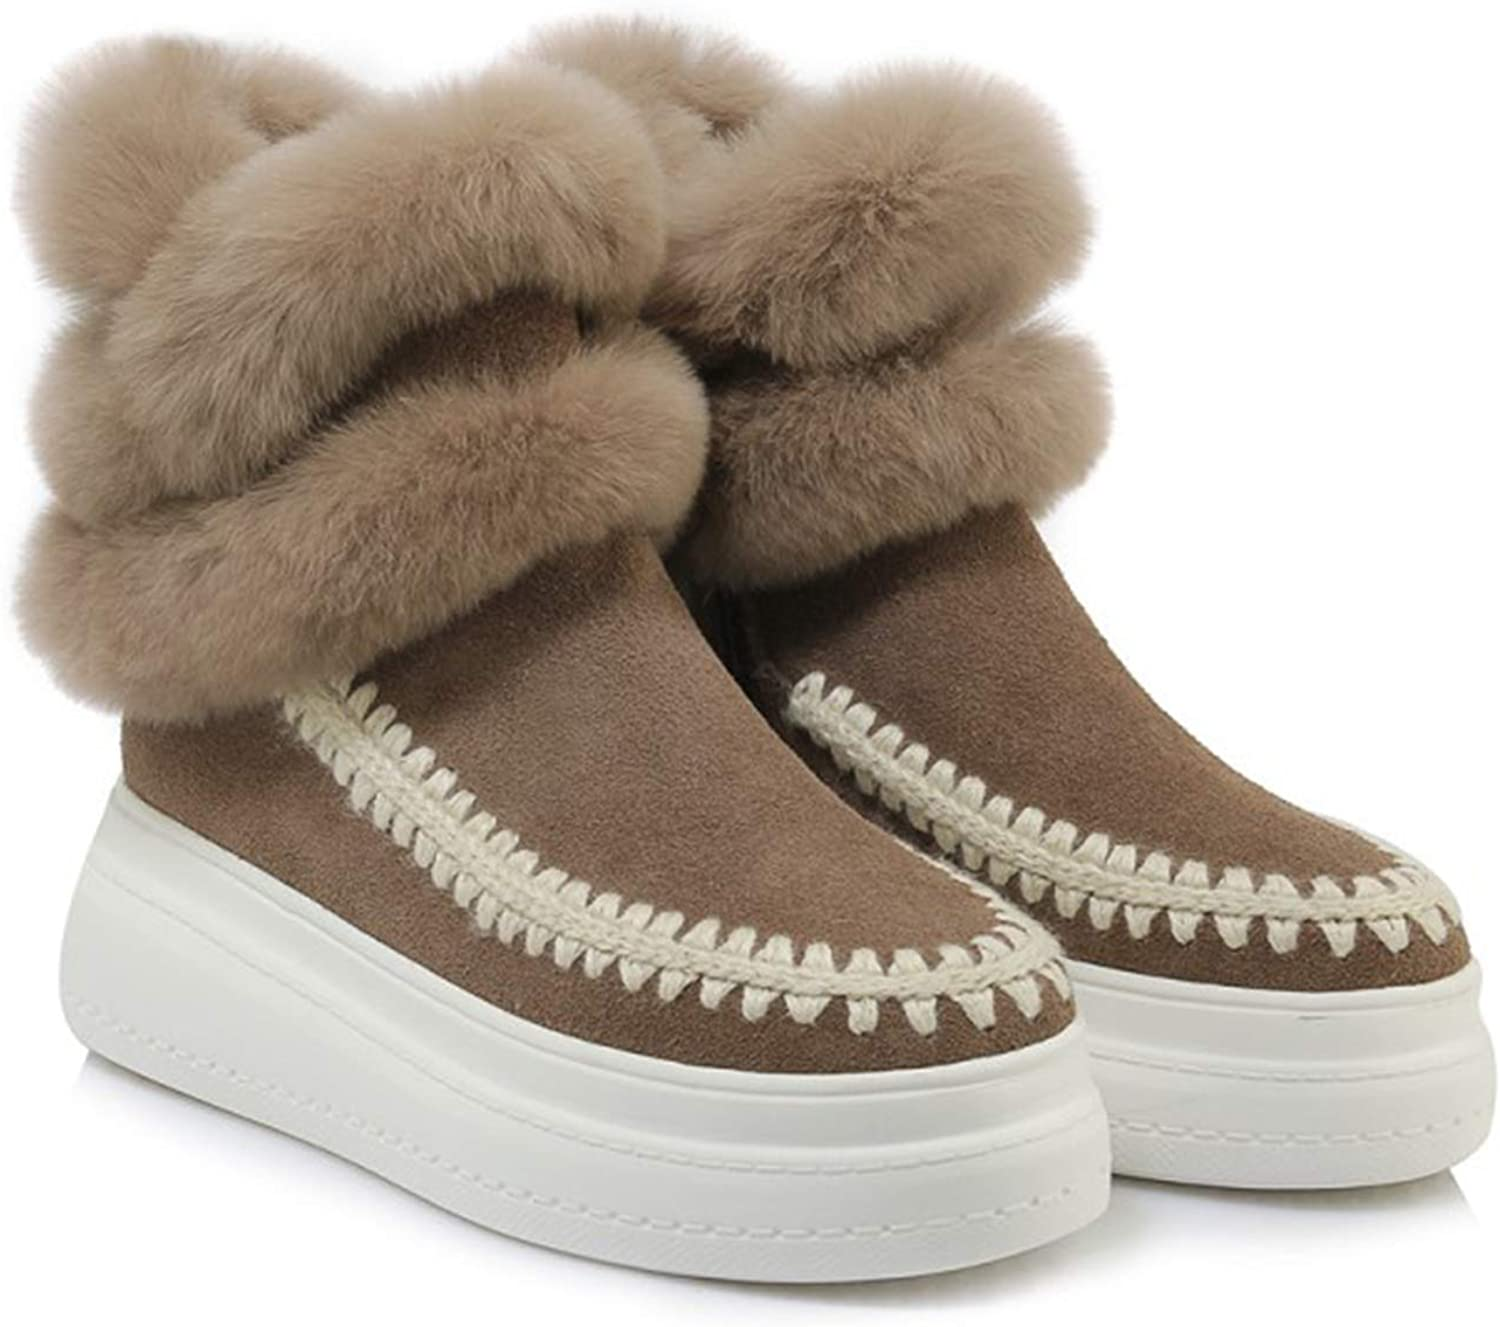 Stylish Personality Women's Snow Boots Warm Thicken Fur Lined Flat Sole Ladies Booties Suit for Winter Indoor & Outdoor Wear,Girls Gift